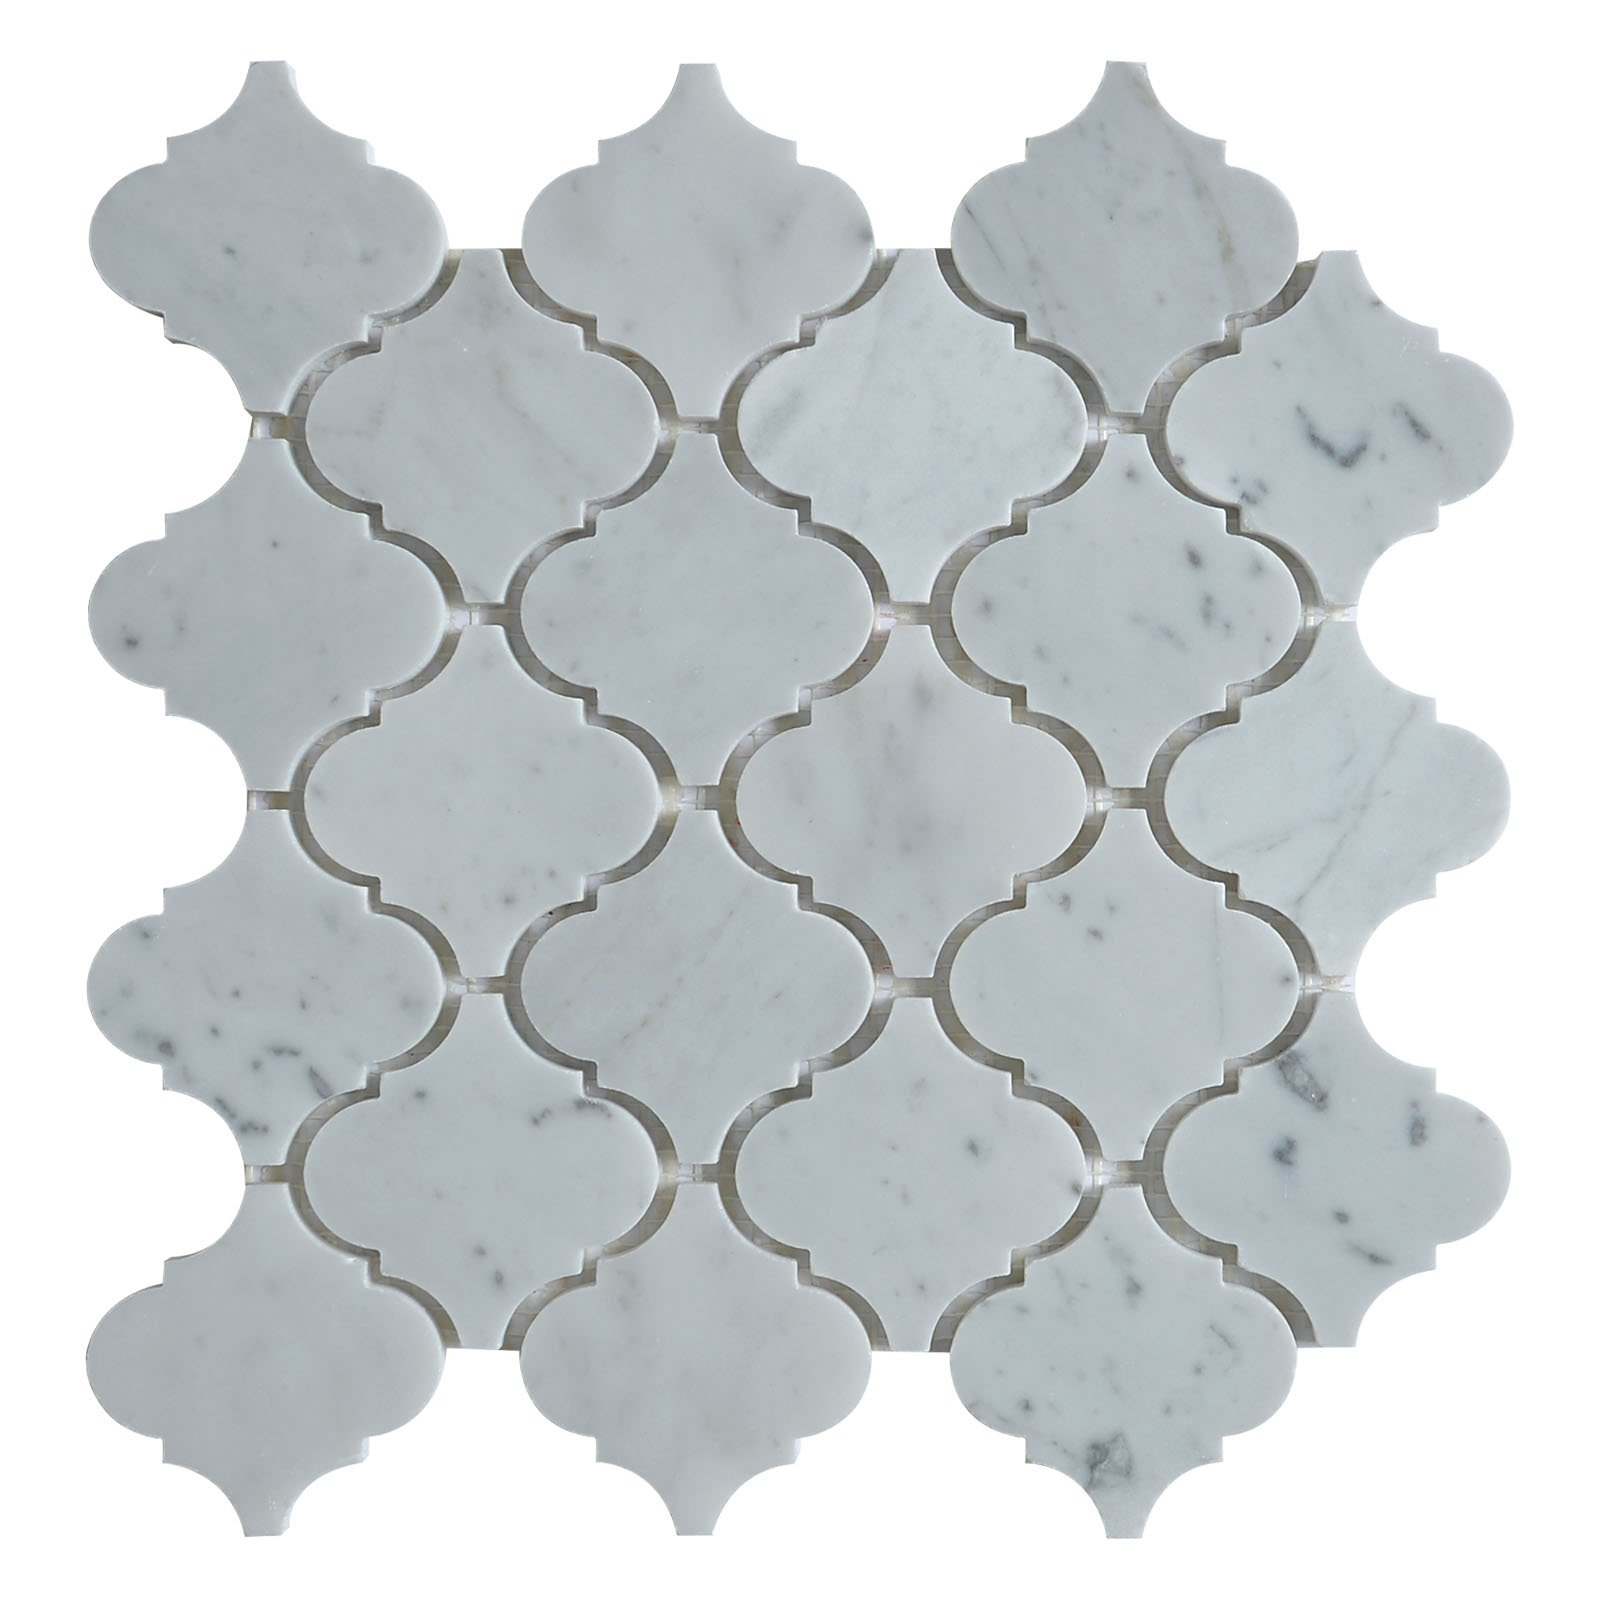 Marble Mosaic Tile, ''Lantern Collection'', MM 9201 - Carrara White, 3''X3'' Arabesque, 12''X10-1/2'', Polished (Lot of 50 Sheets)